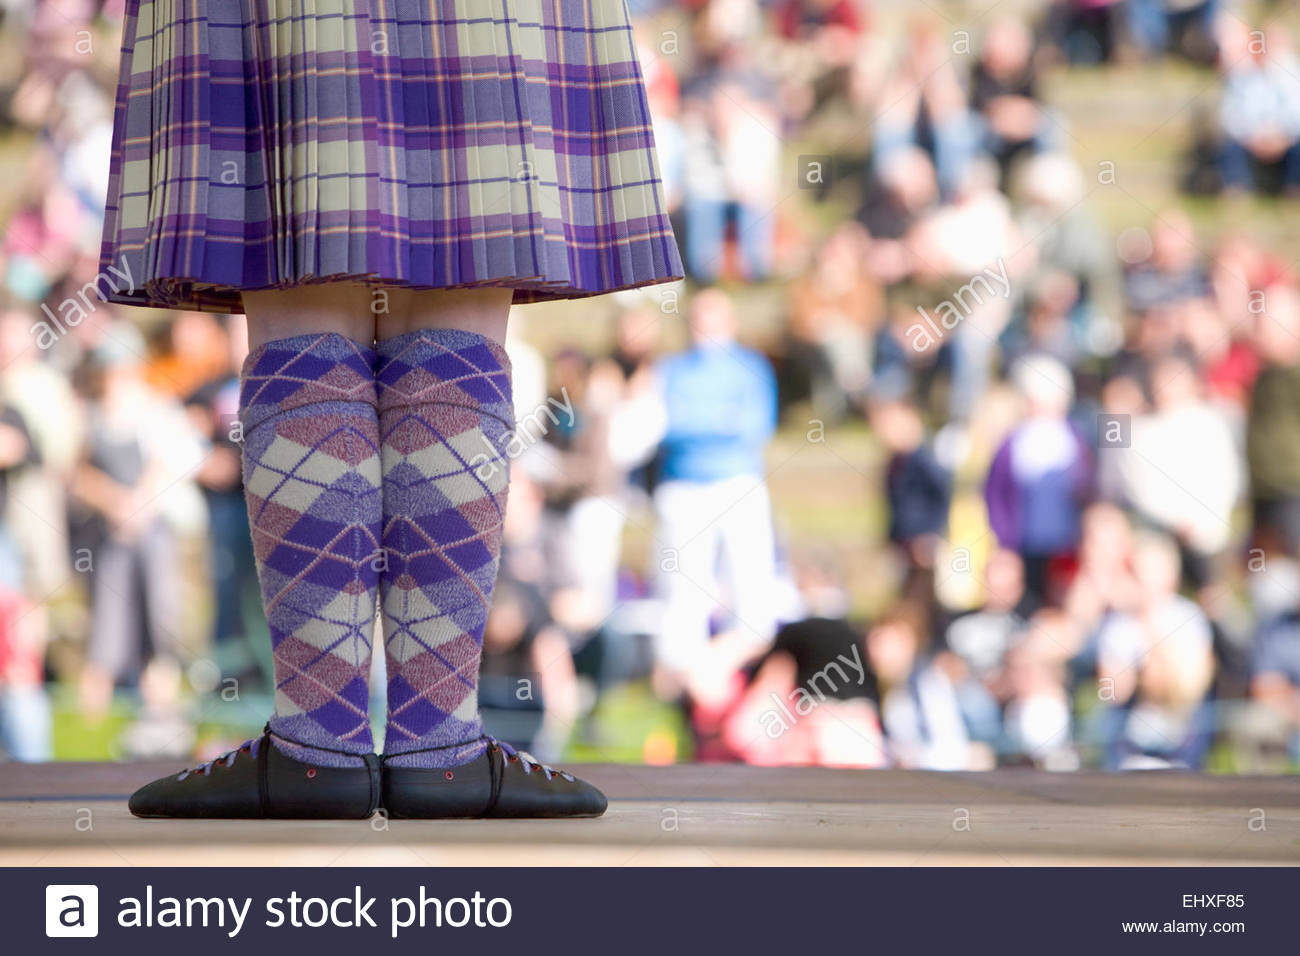 Highland dancing tartan girl kilt dancer Pitlochry - Stock Image